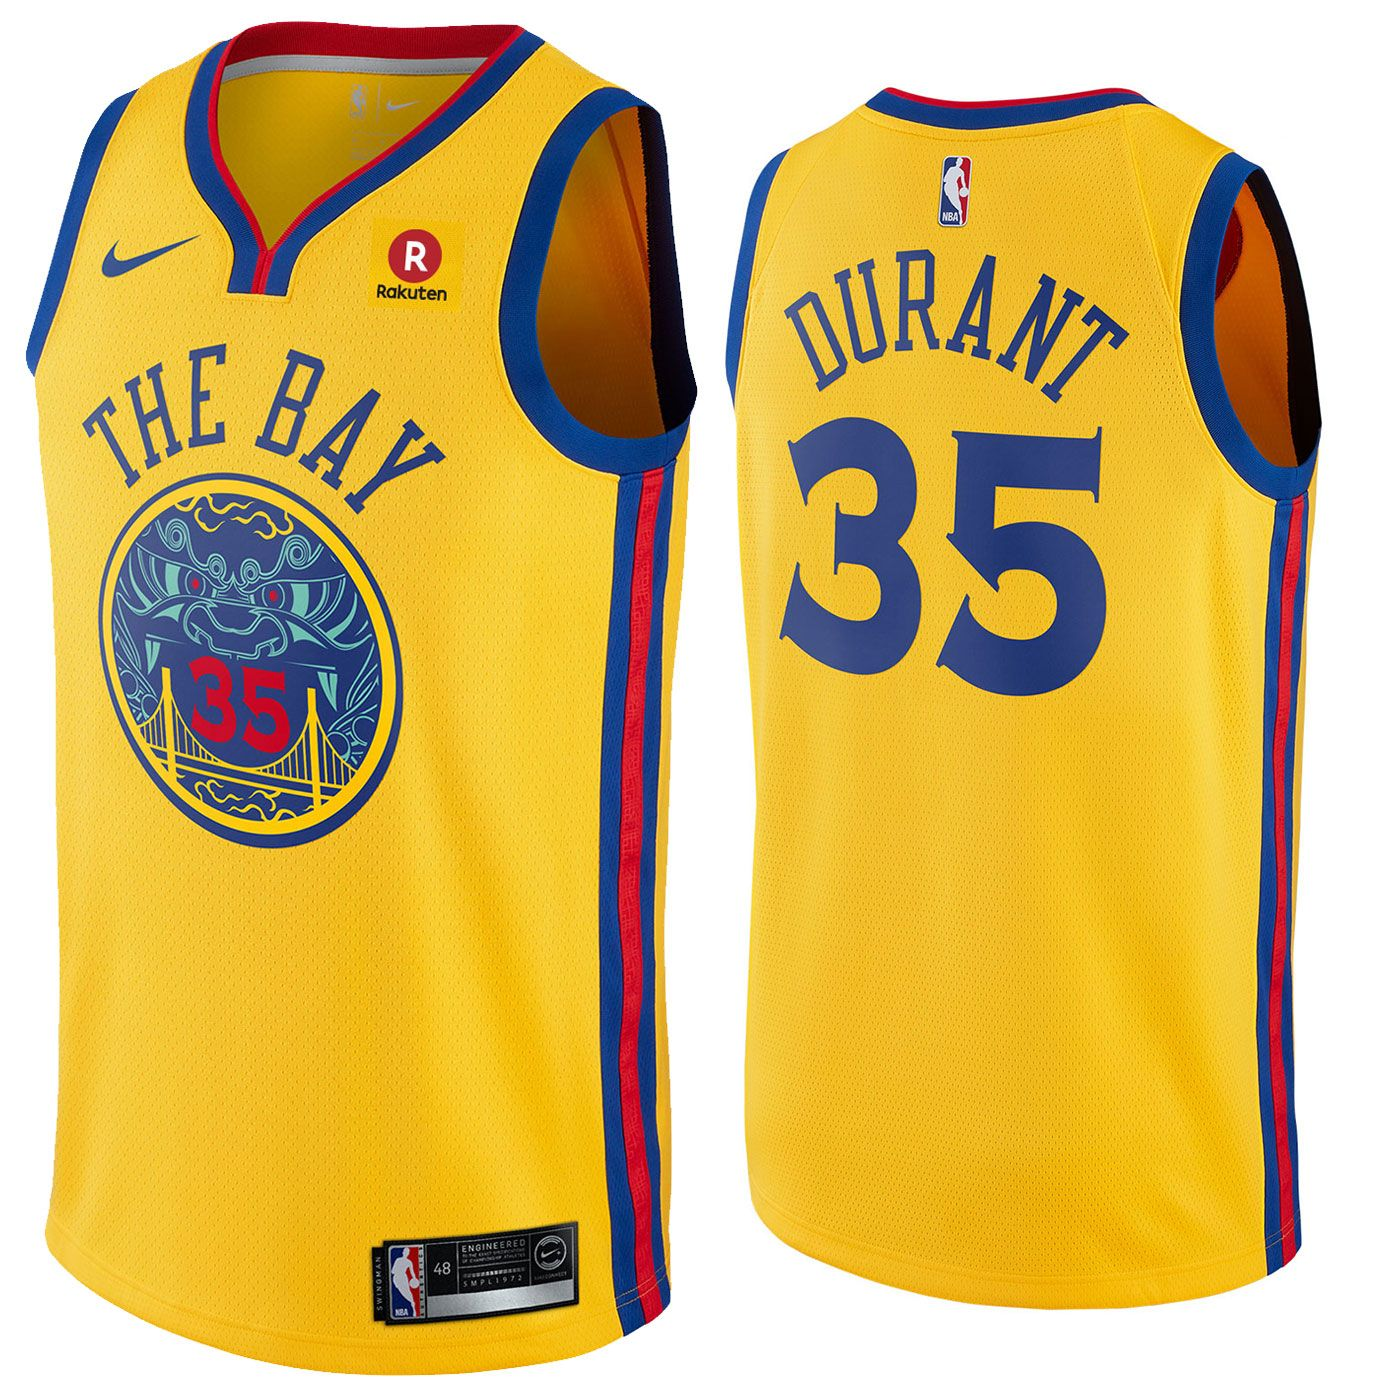 229944db4 Golden State Warriors Nike Dri-FIT Men s Chinese Heritage Kevin Durant  35  Swingman City Edition Jersey - Gold